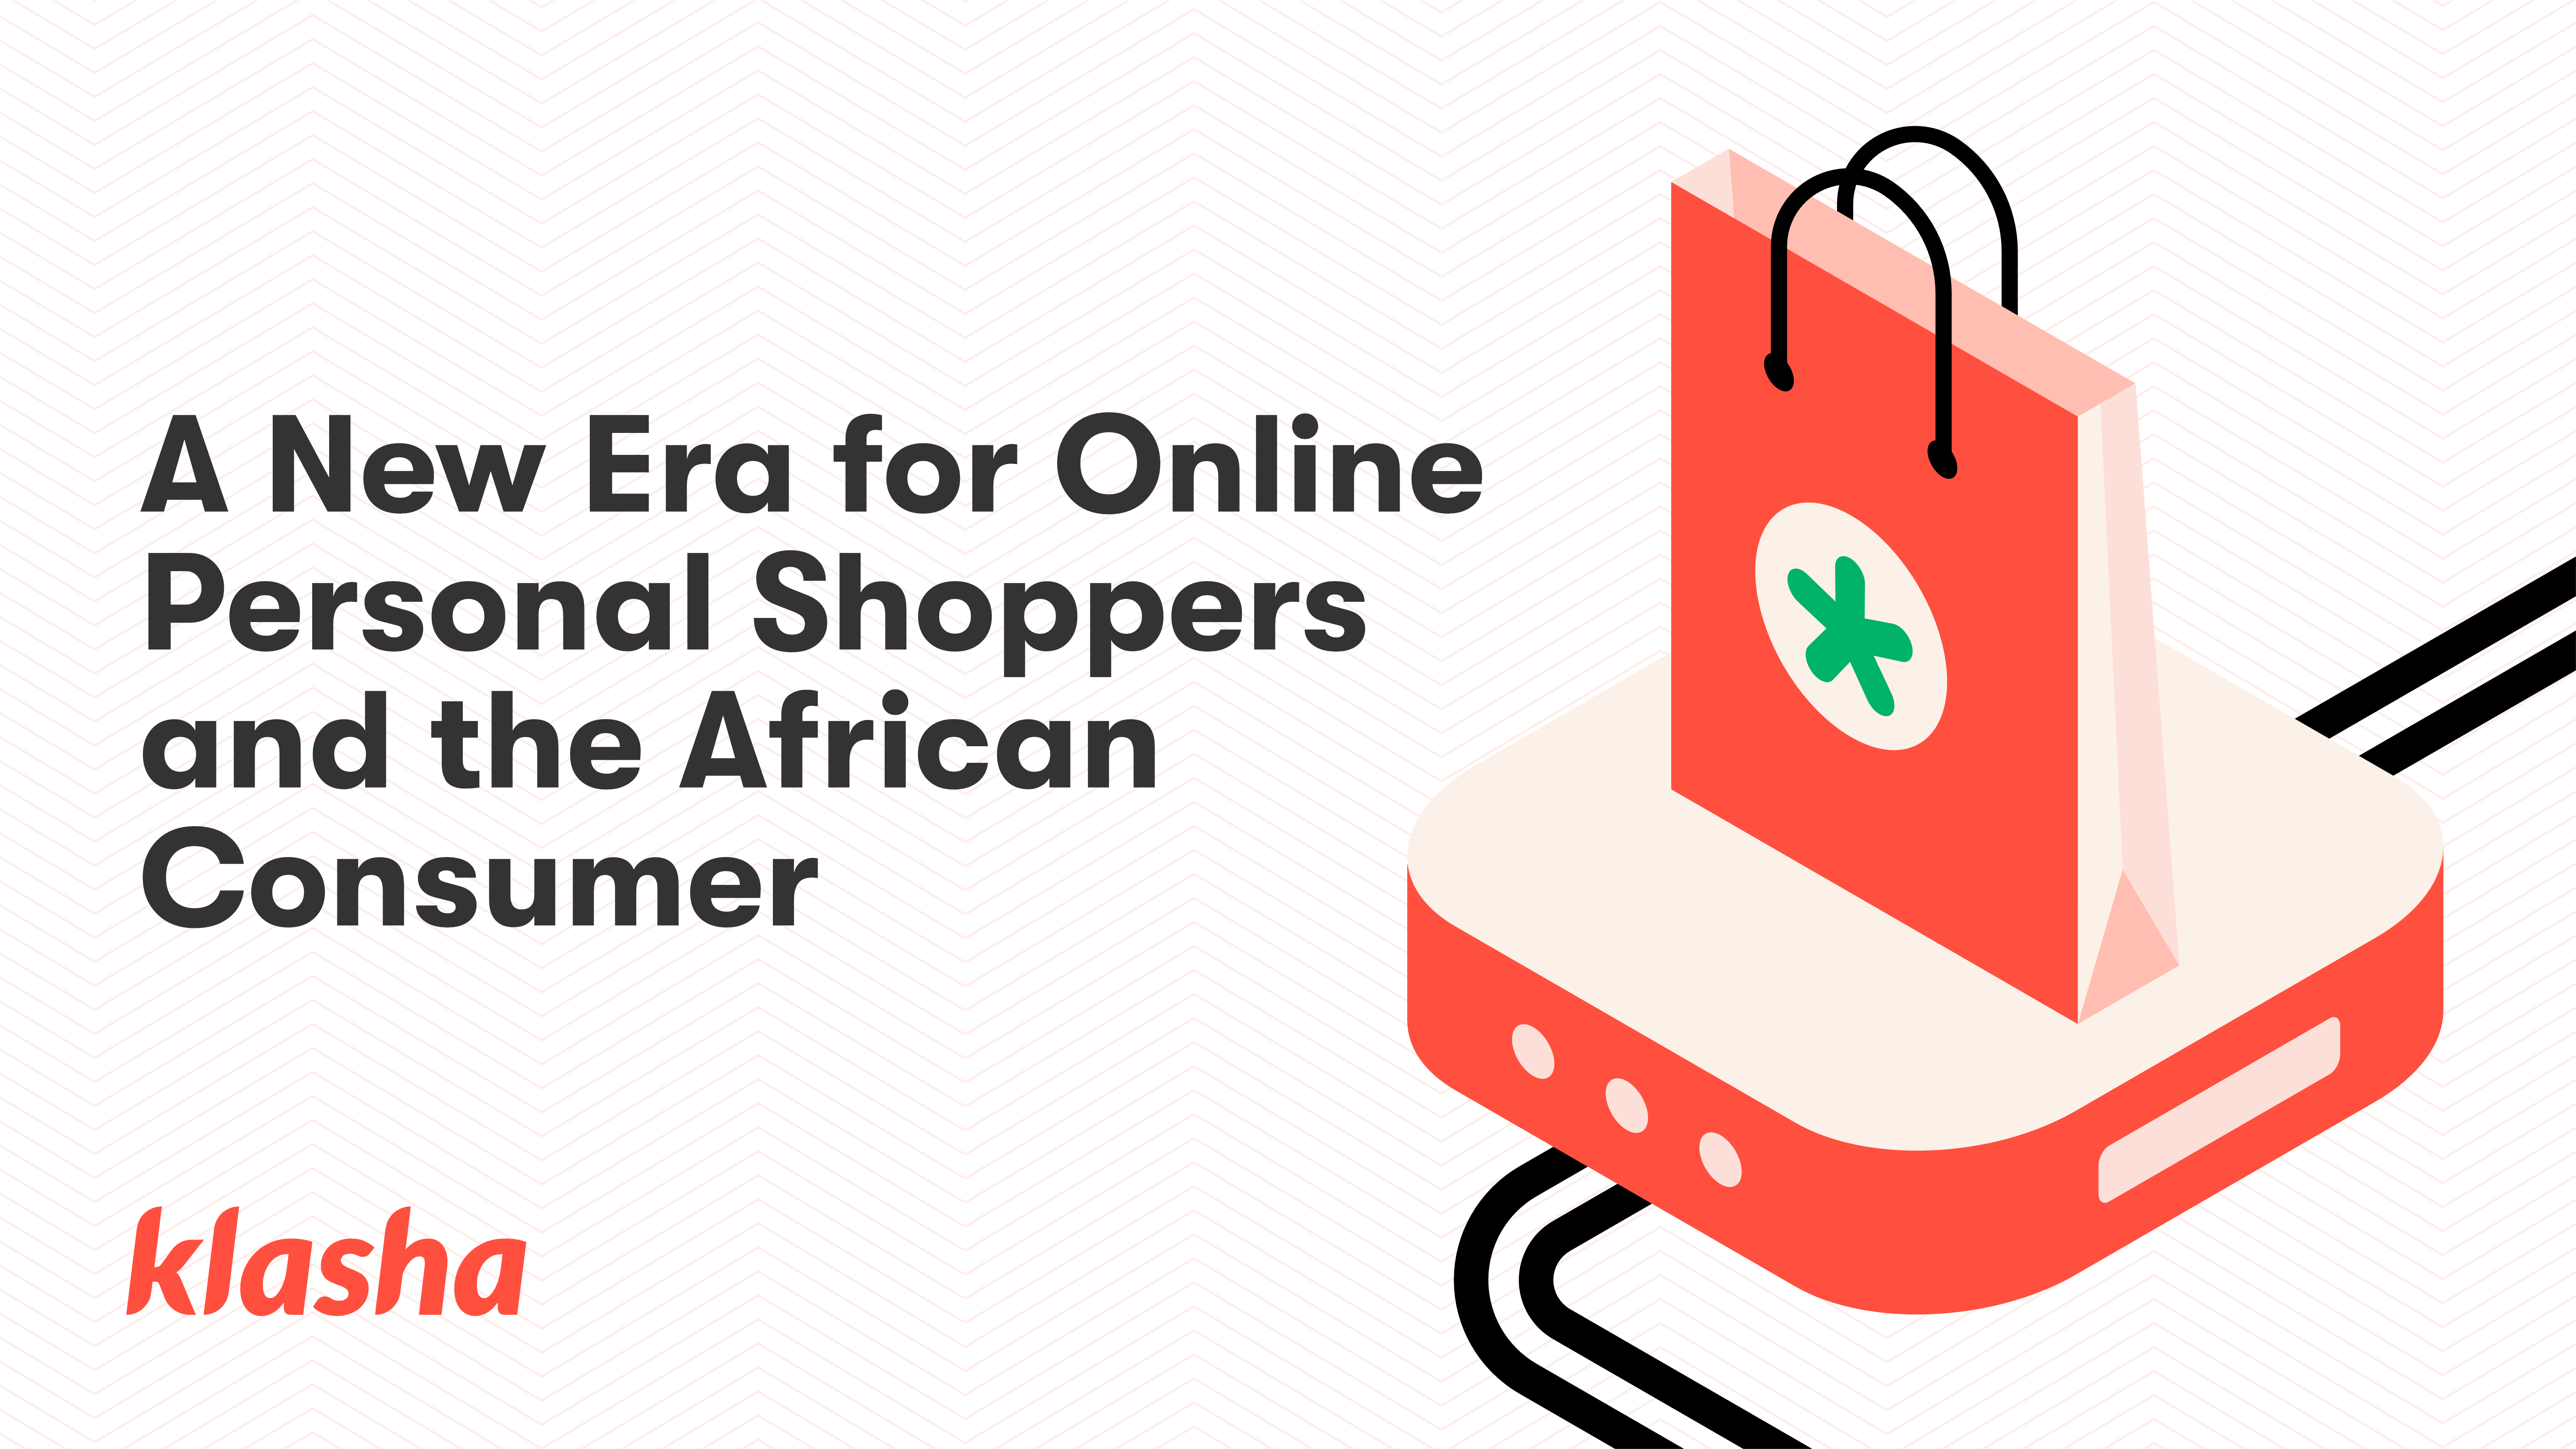 A New Era for Online Personal Shoppers and the African Consumer